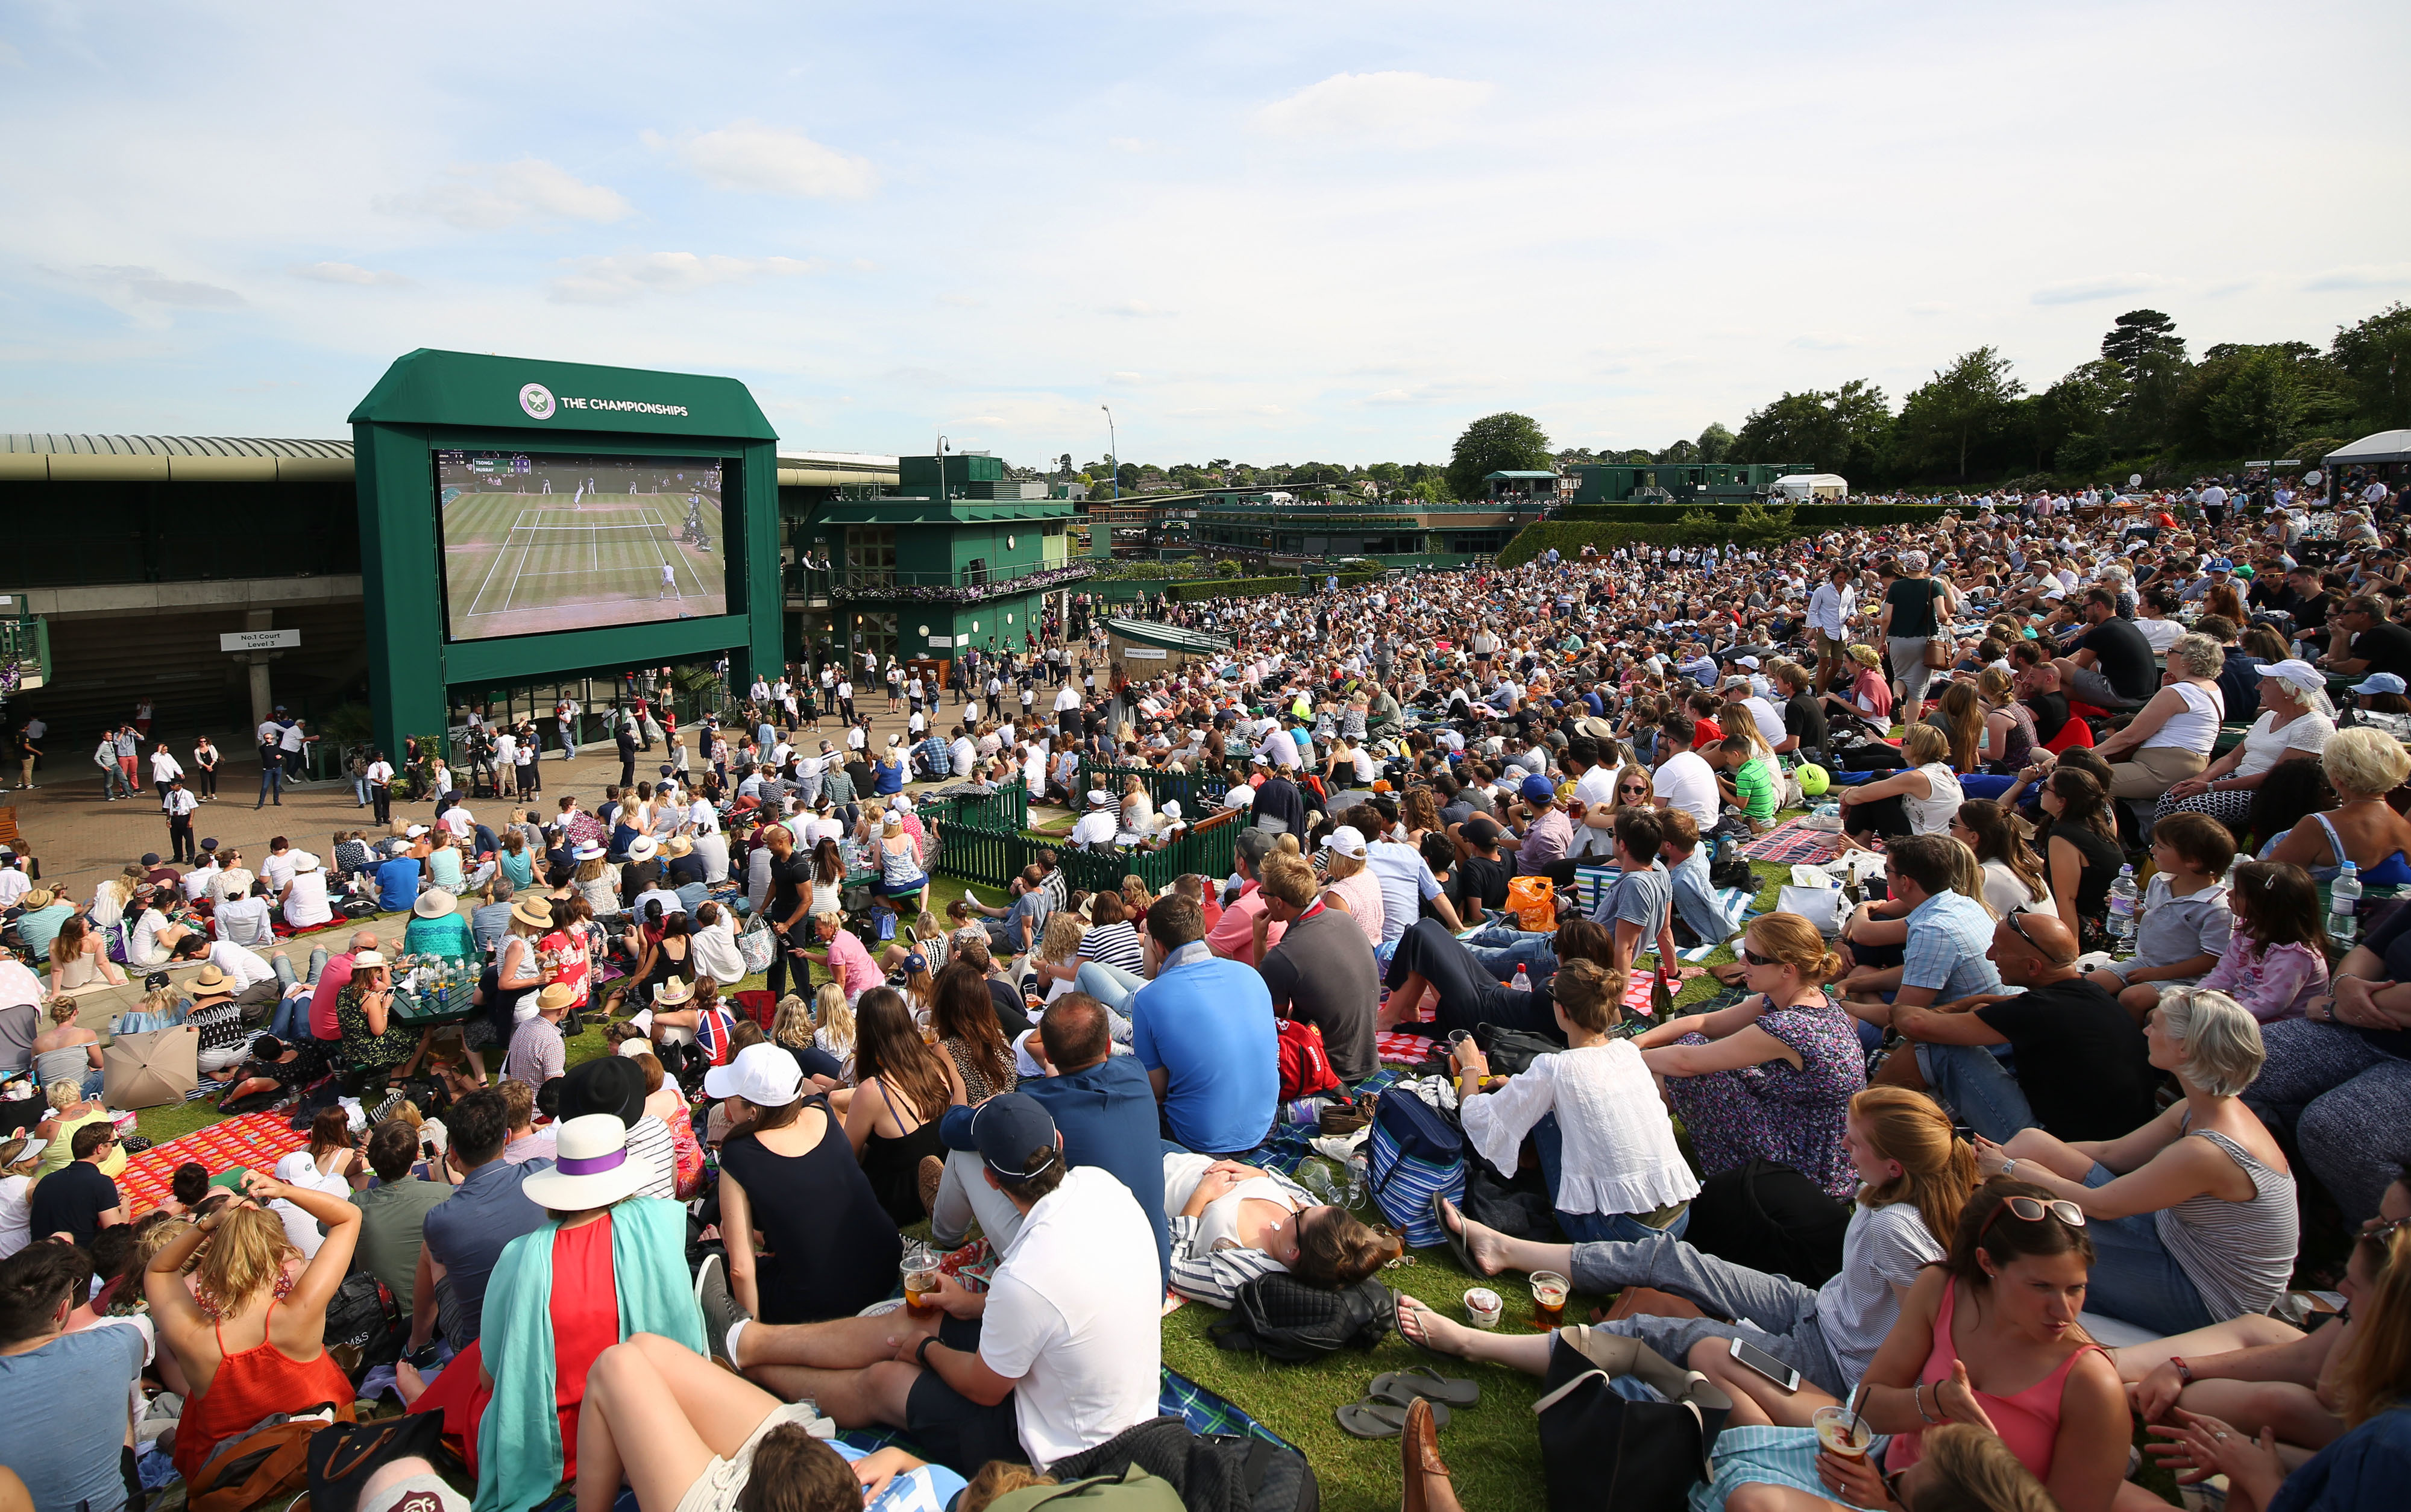 Crowds now often flock to Henman Hill to watch Murray. Image: PA Images